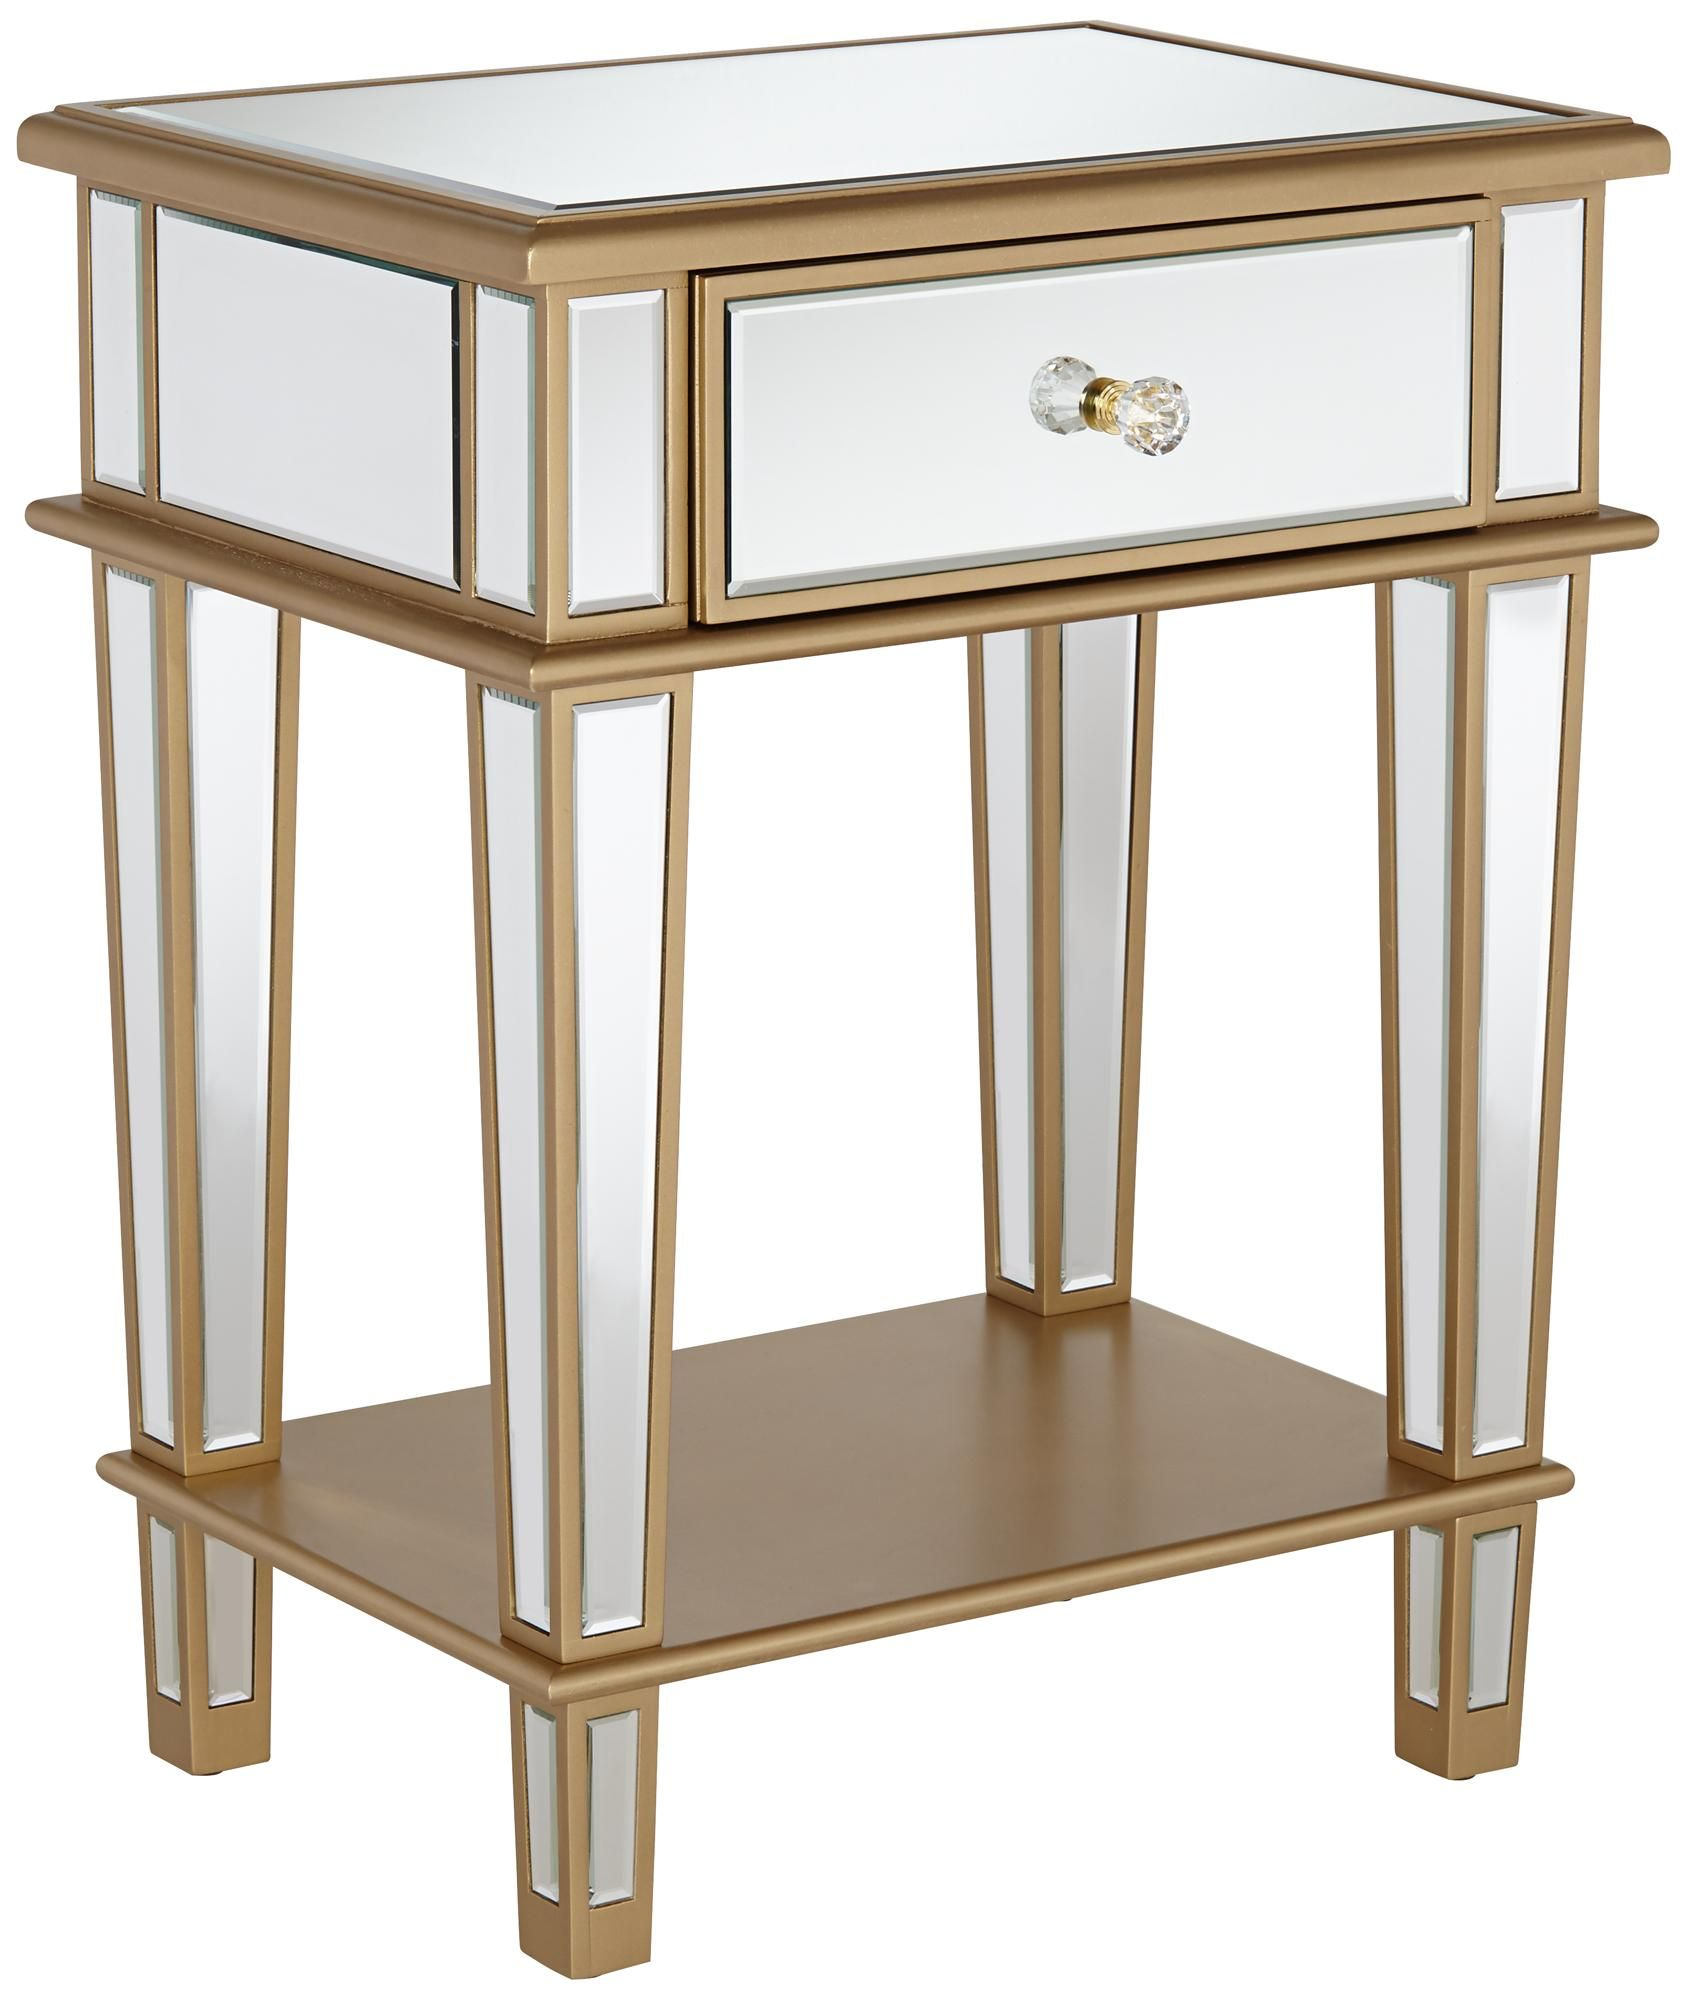 joslyn 1 drawer gold mirrored end table apartment accessories mirrored end table end tables. Black Bedroom Furniture Sets. Home Design Ideas